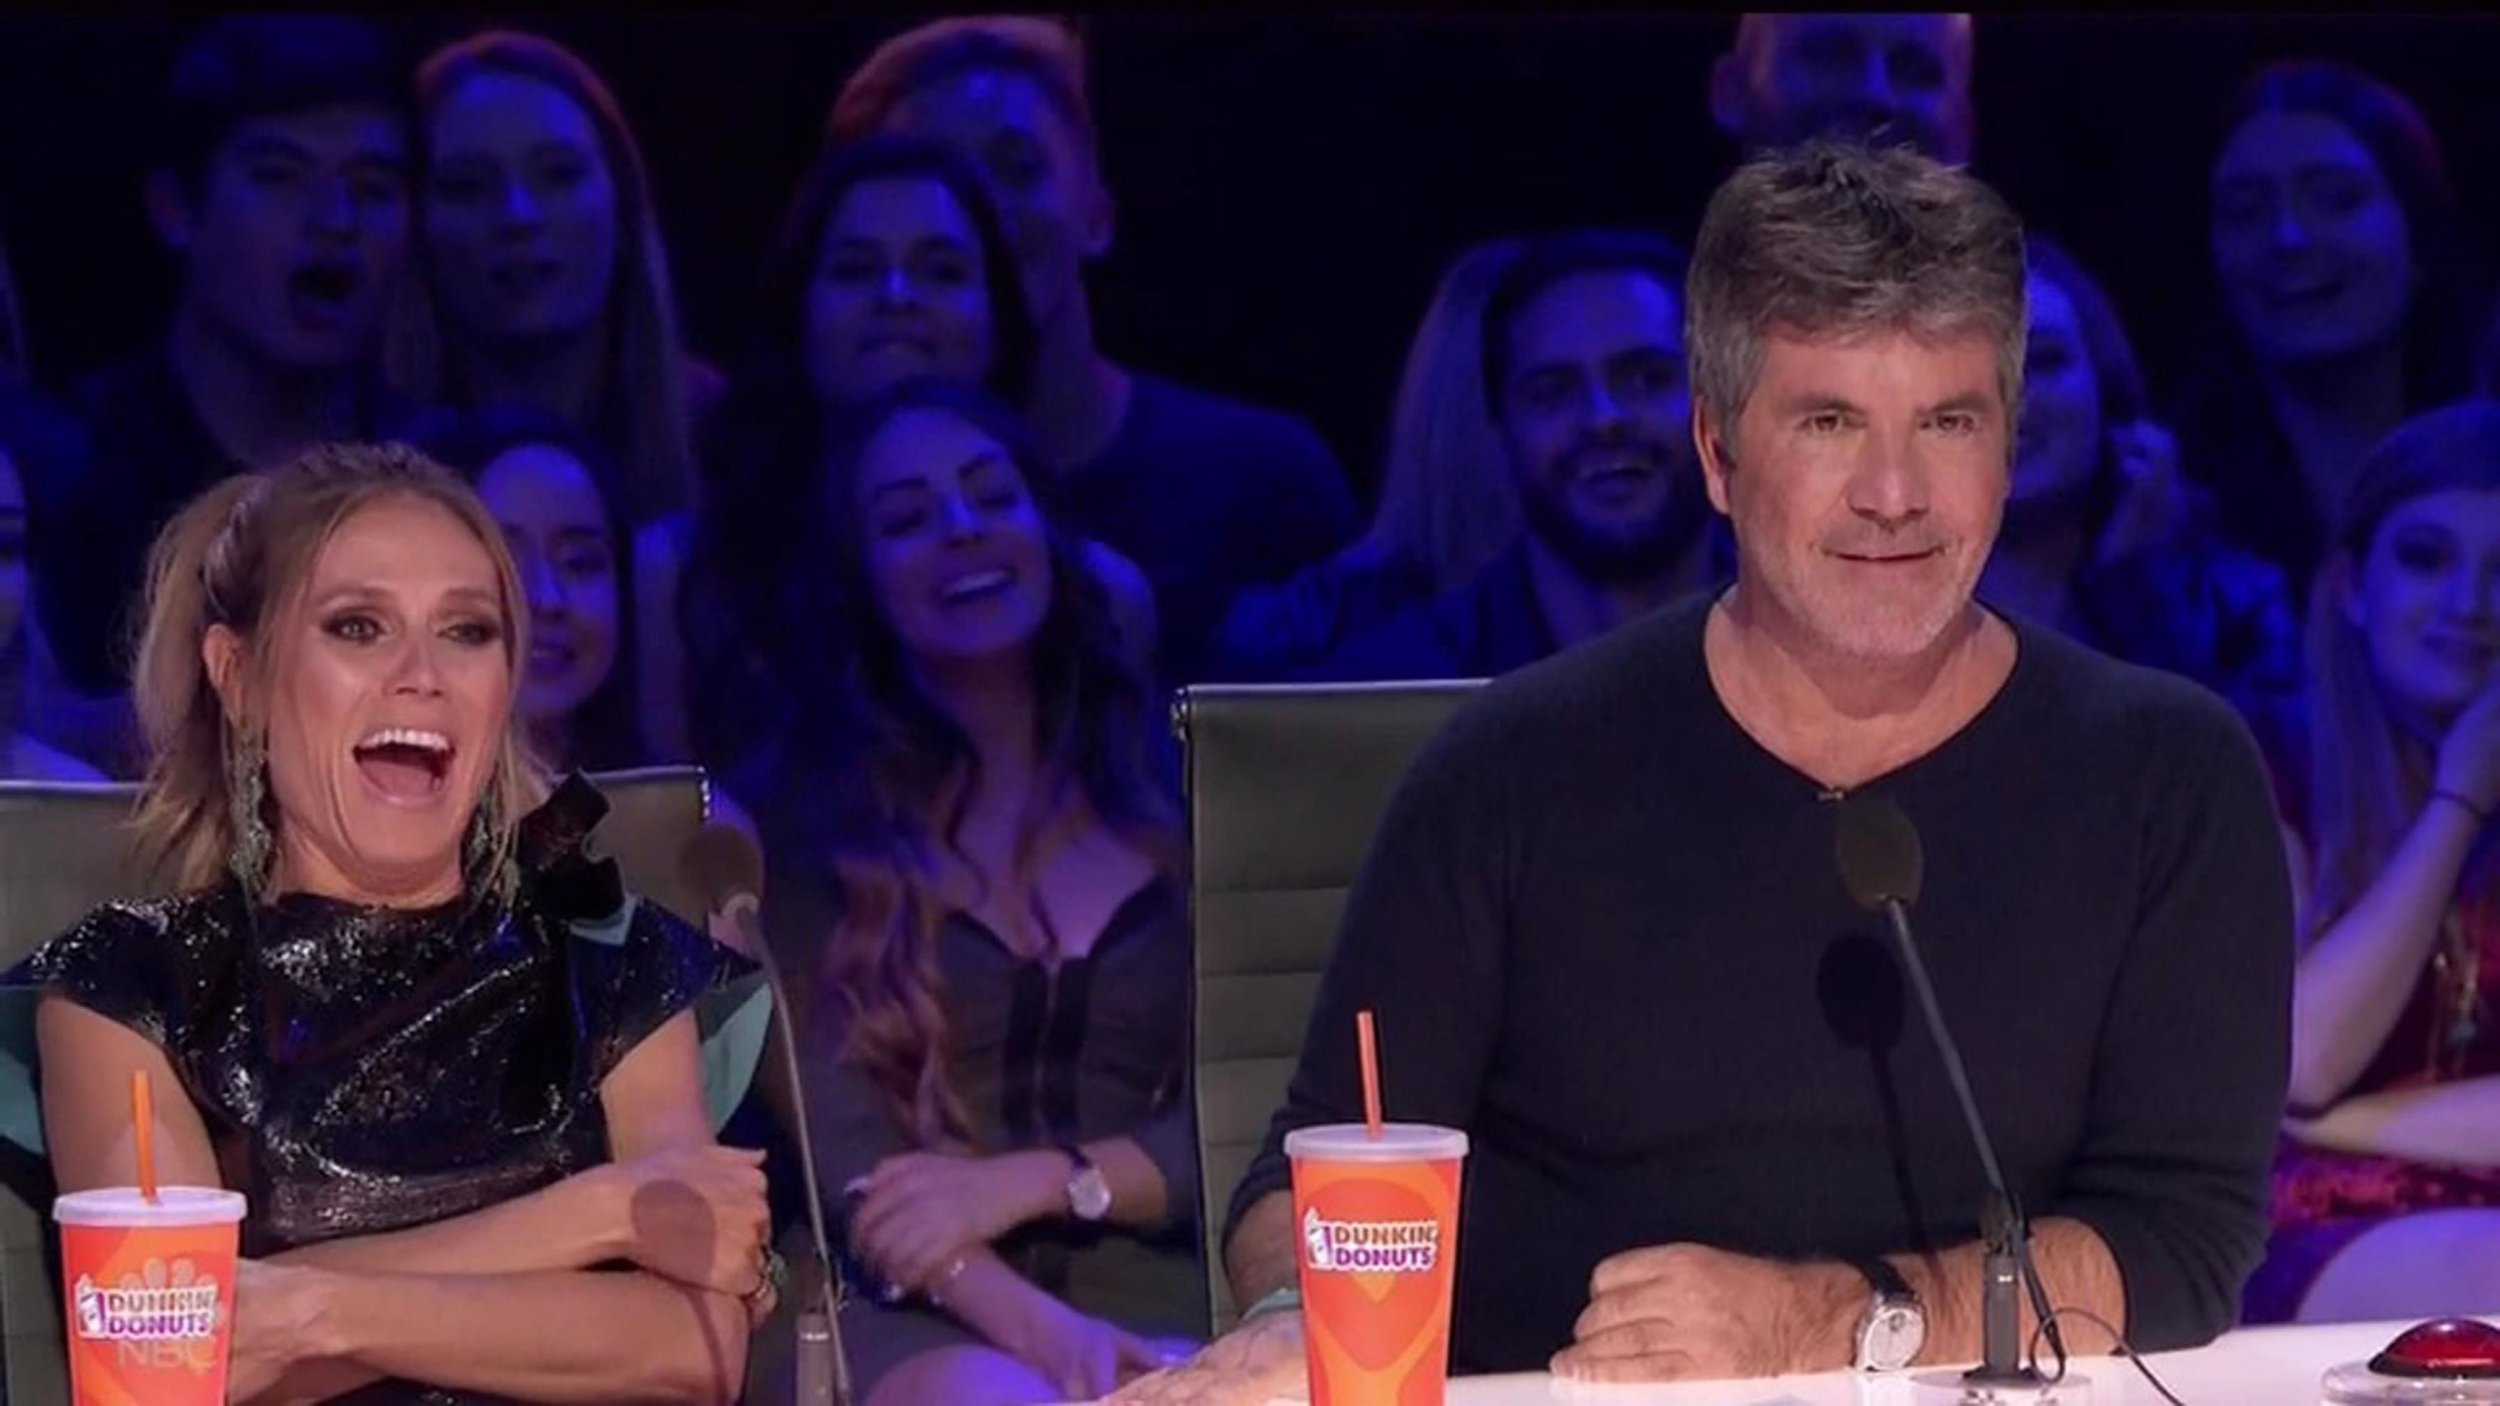 America's Got Talent: Simon Cowell demands Heidi Klum changes vote in live show 'You don't care about the planet'